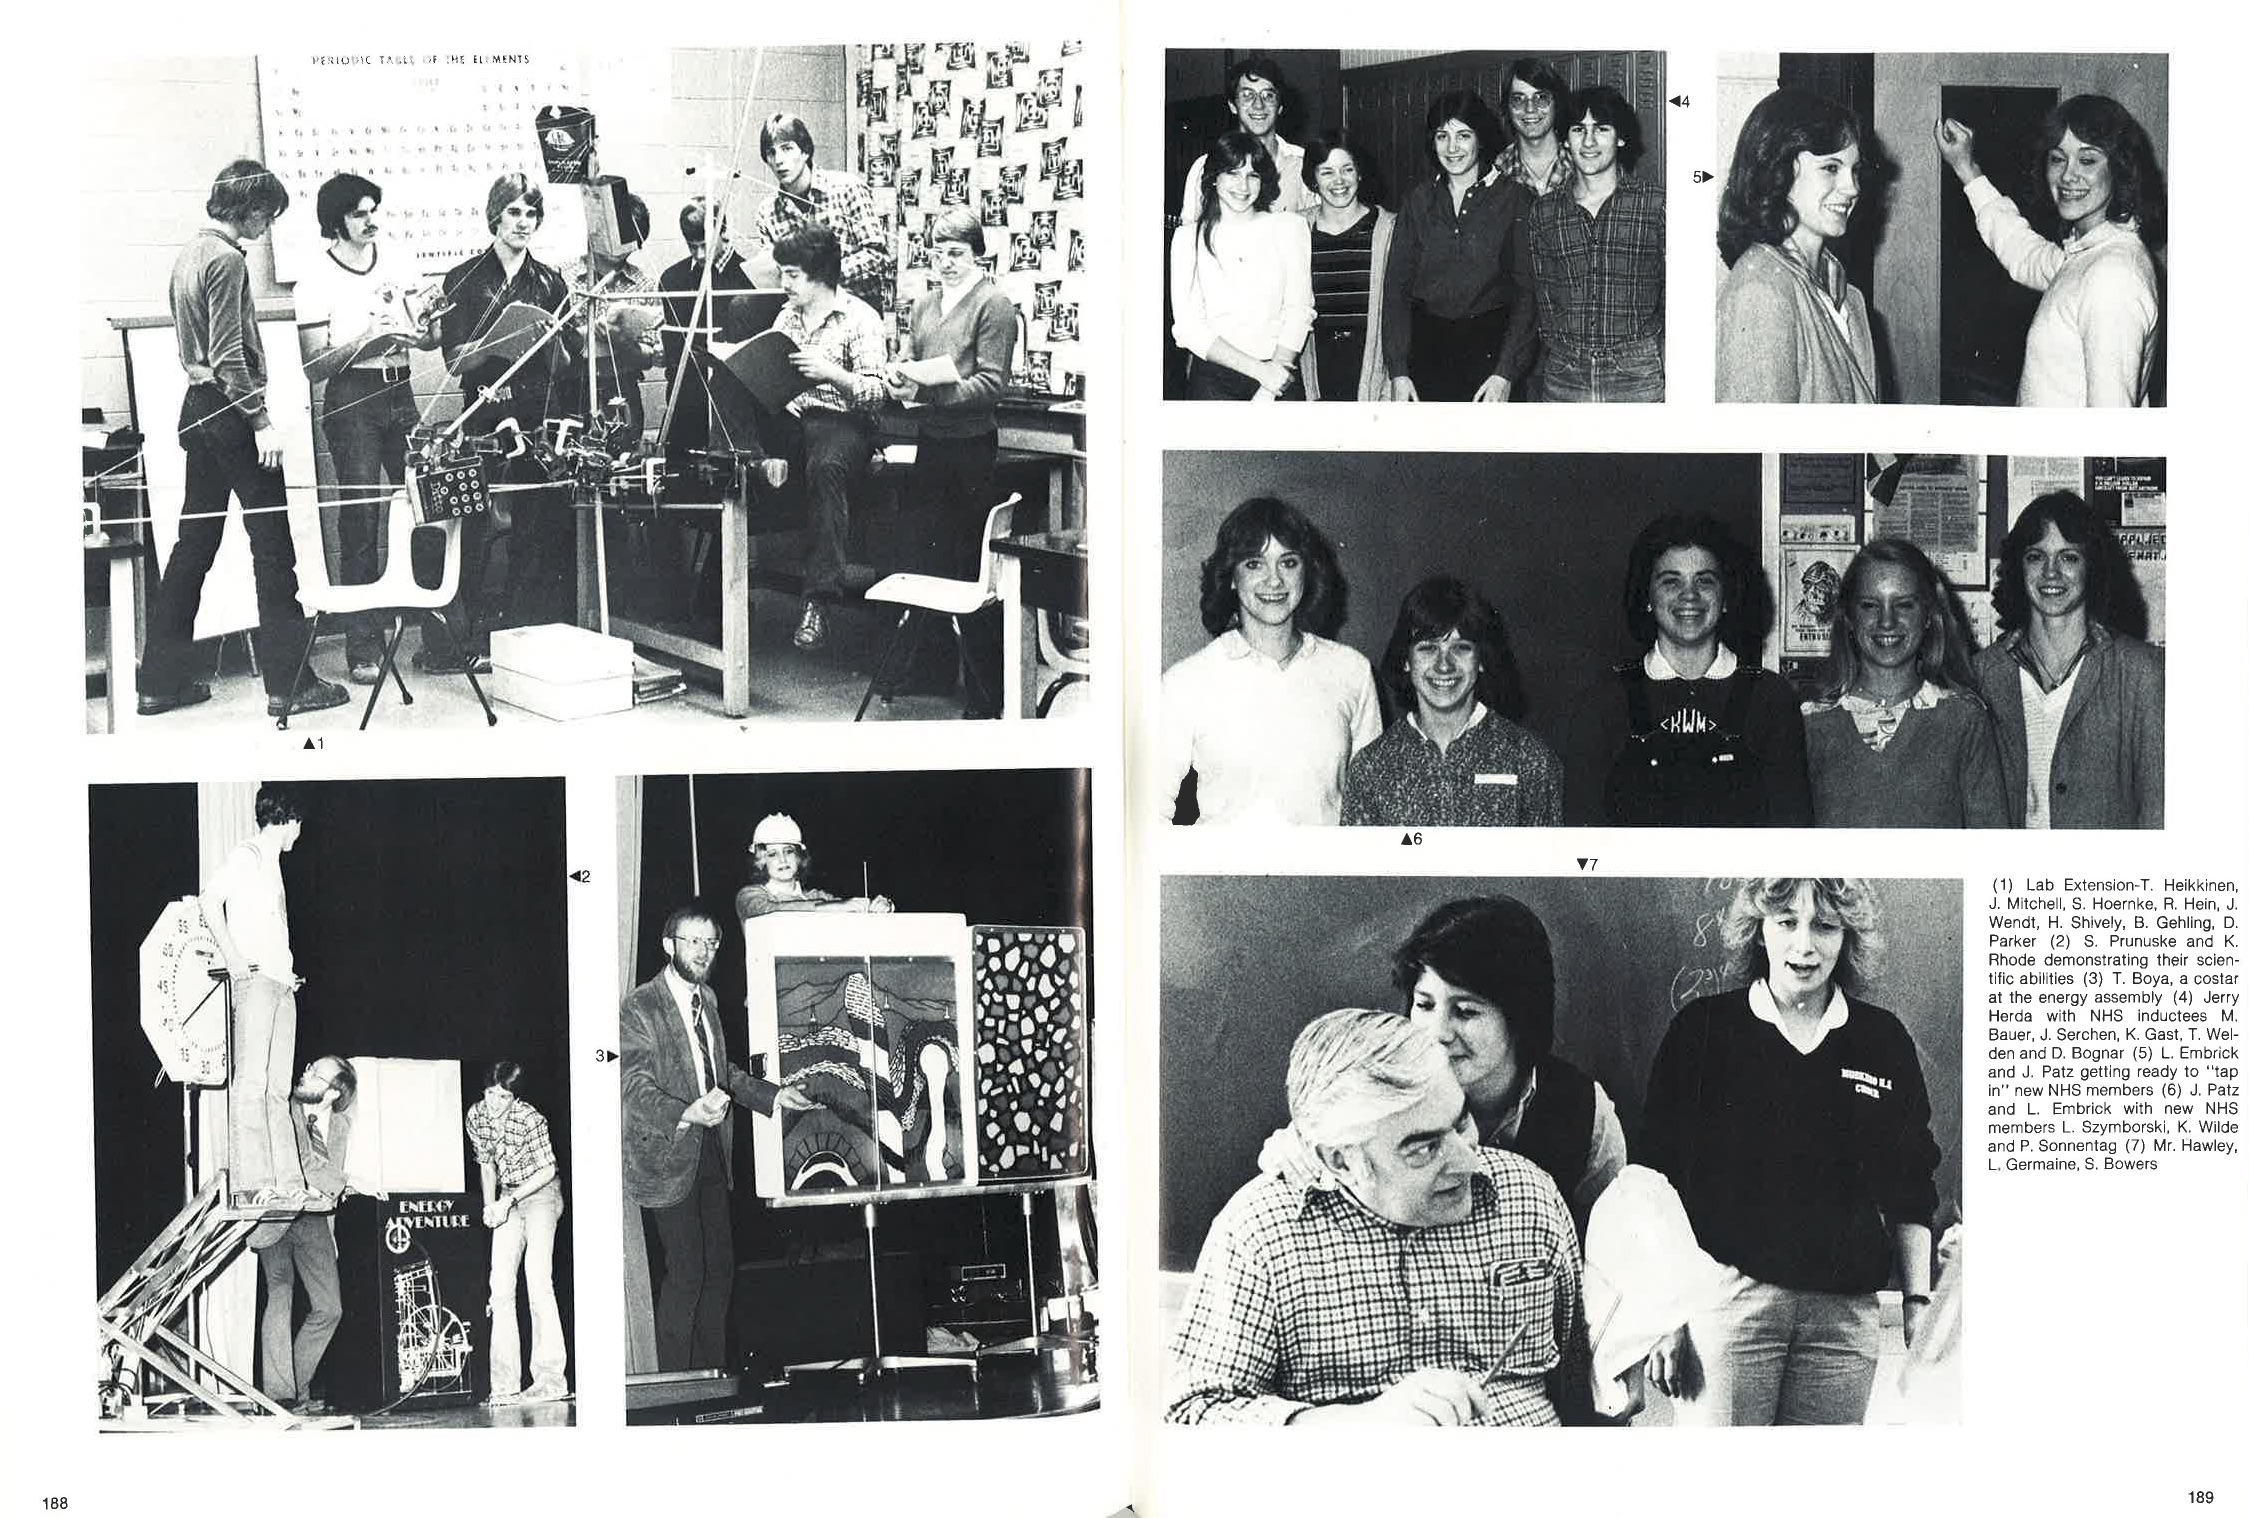 1981_Yearbook_188.jpg